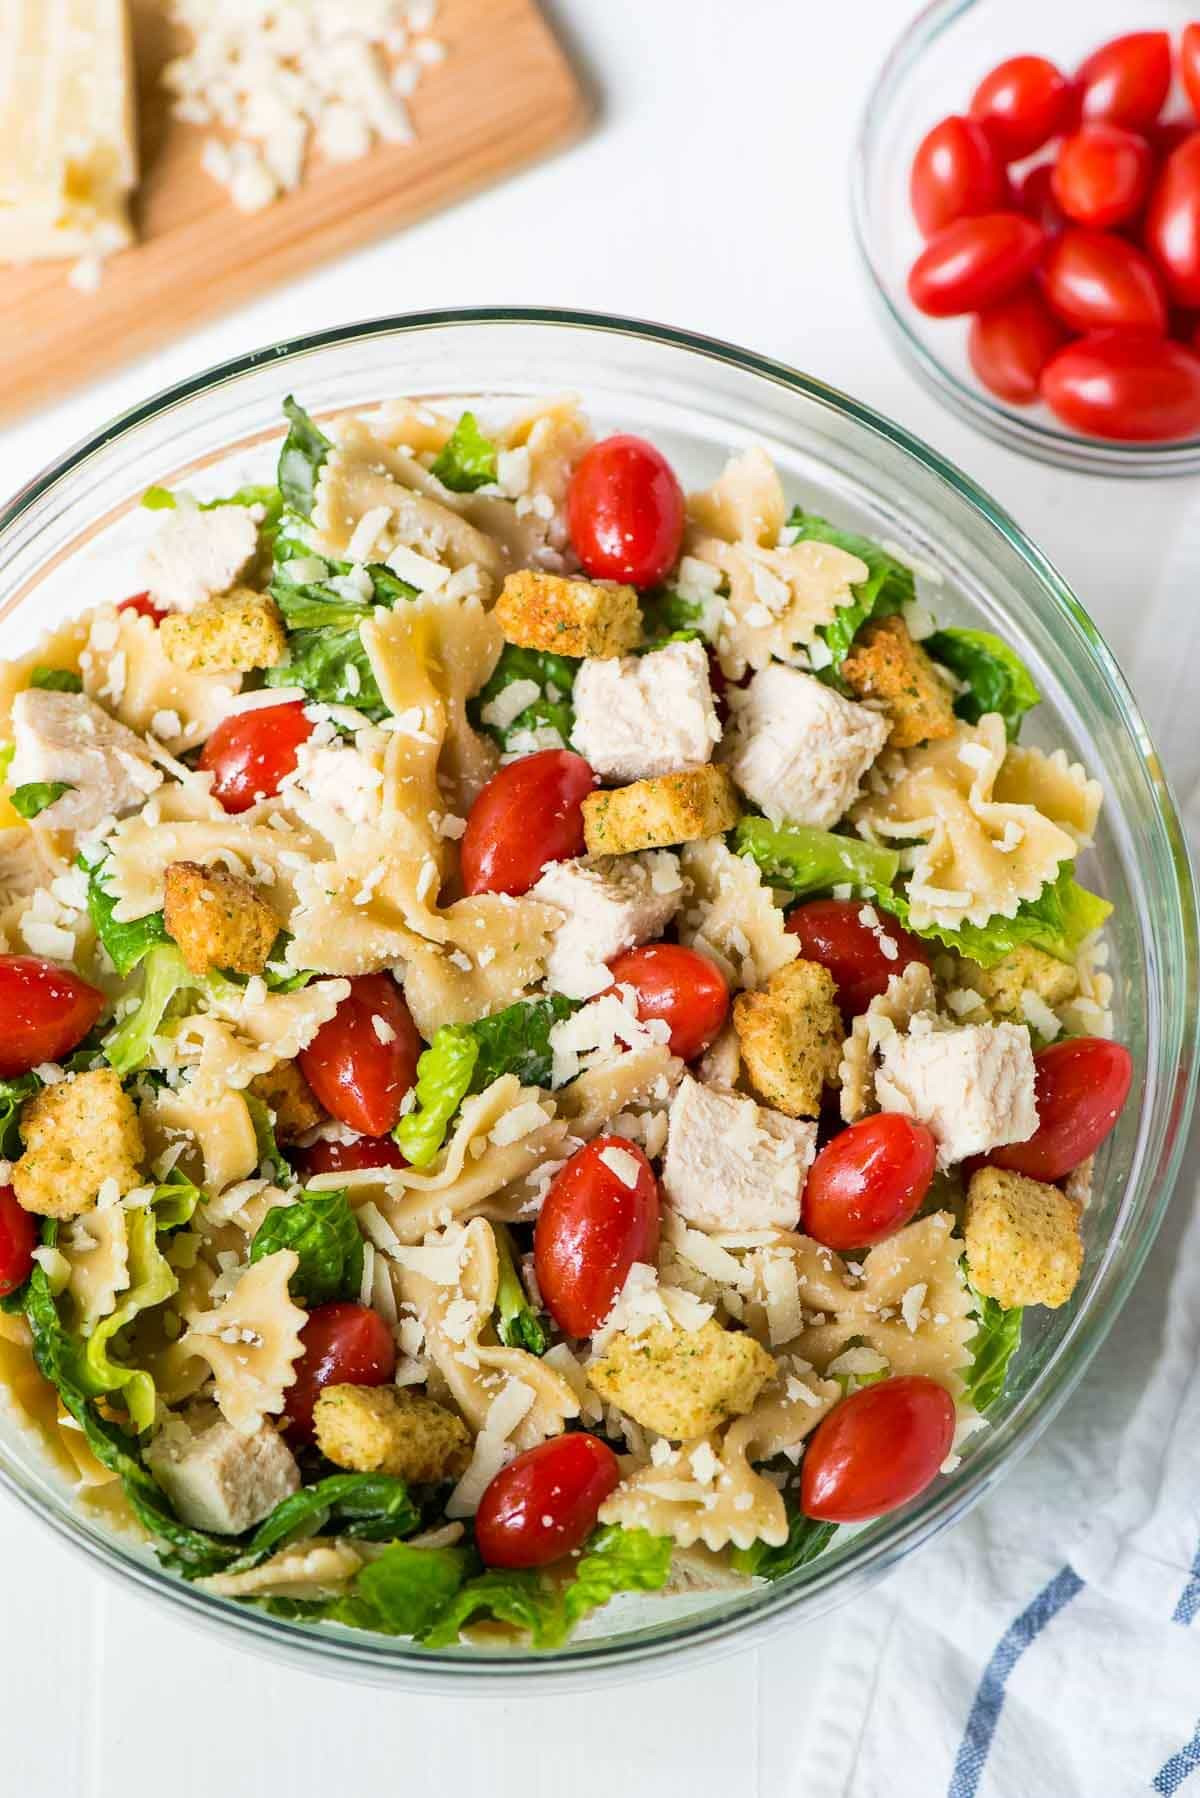 Easy Pasta Salad Recipes  Asian Noodle Salad with Creamy Peanut Dressing